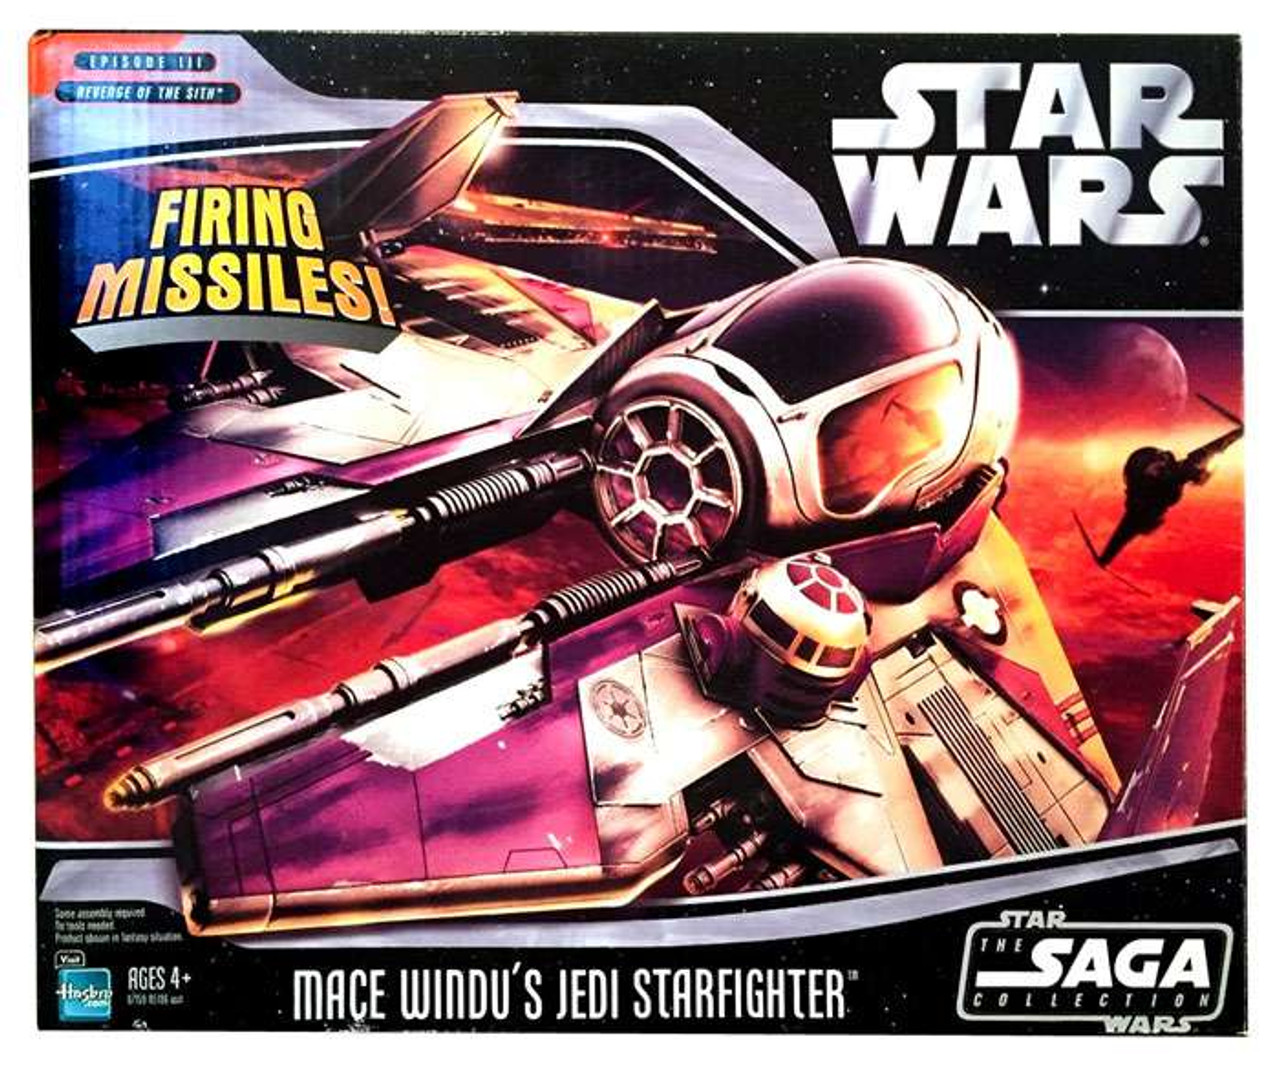 Star Wars Revenge of the Sith 2006 Saga Collection Mace Windu's Jedi Starfighter Action Figure Vehicle